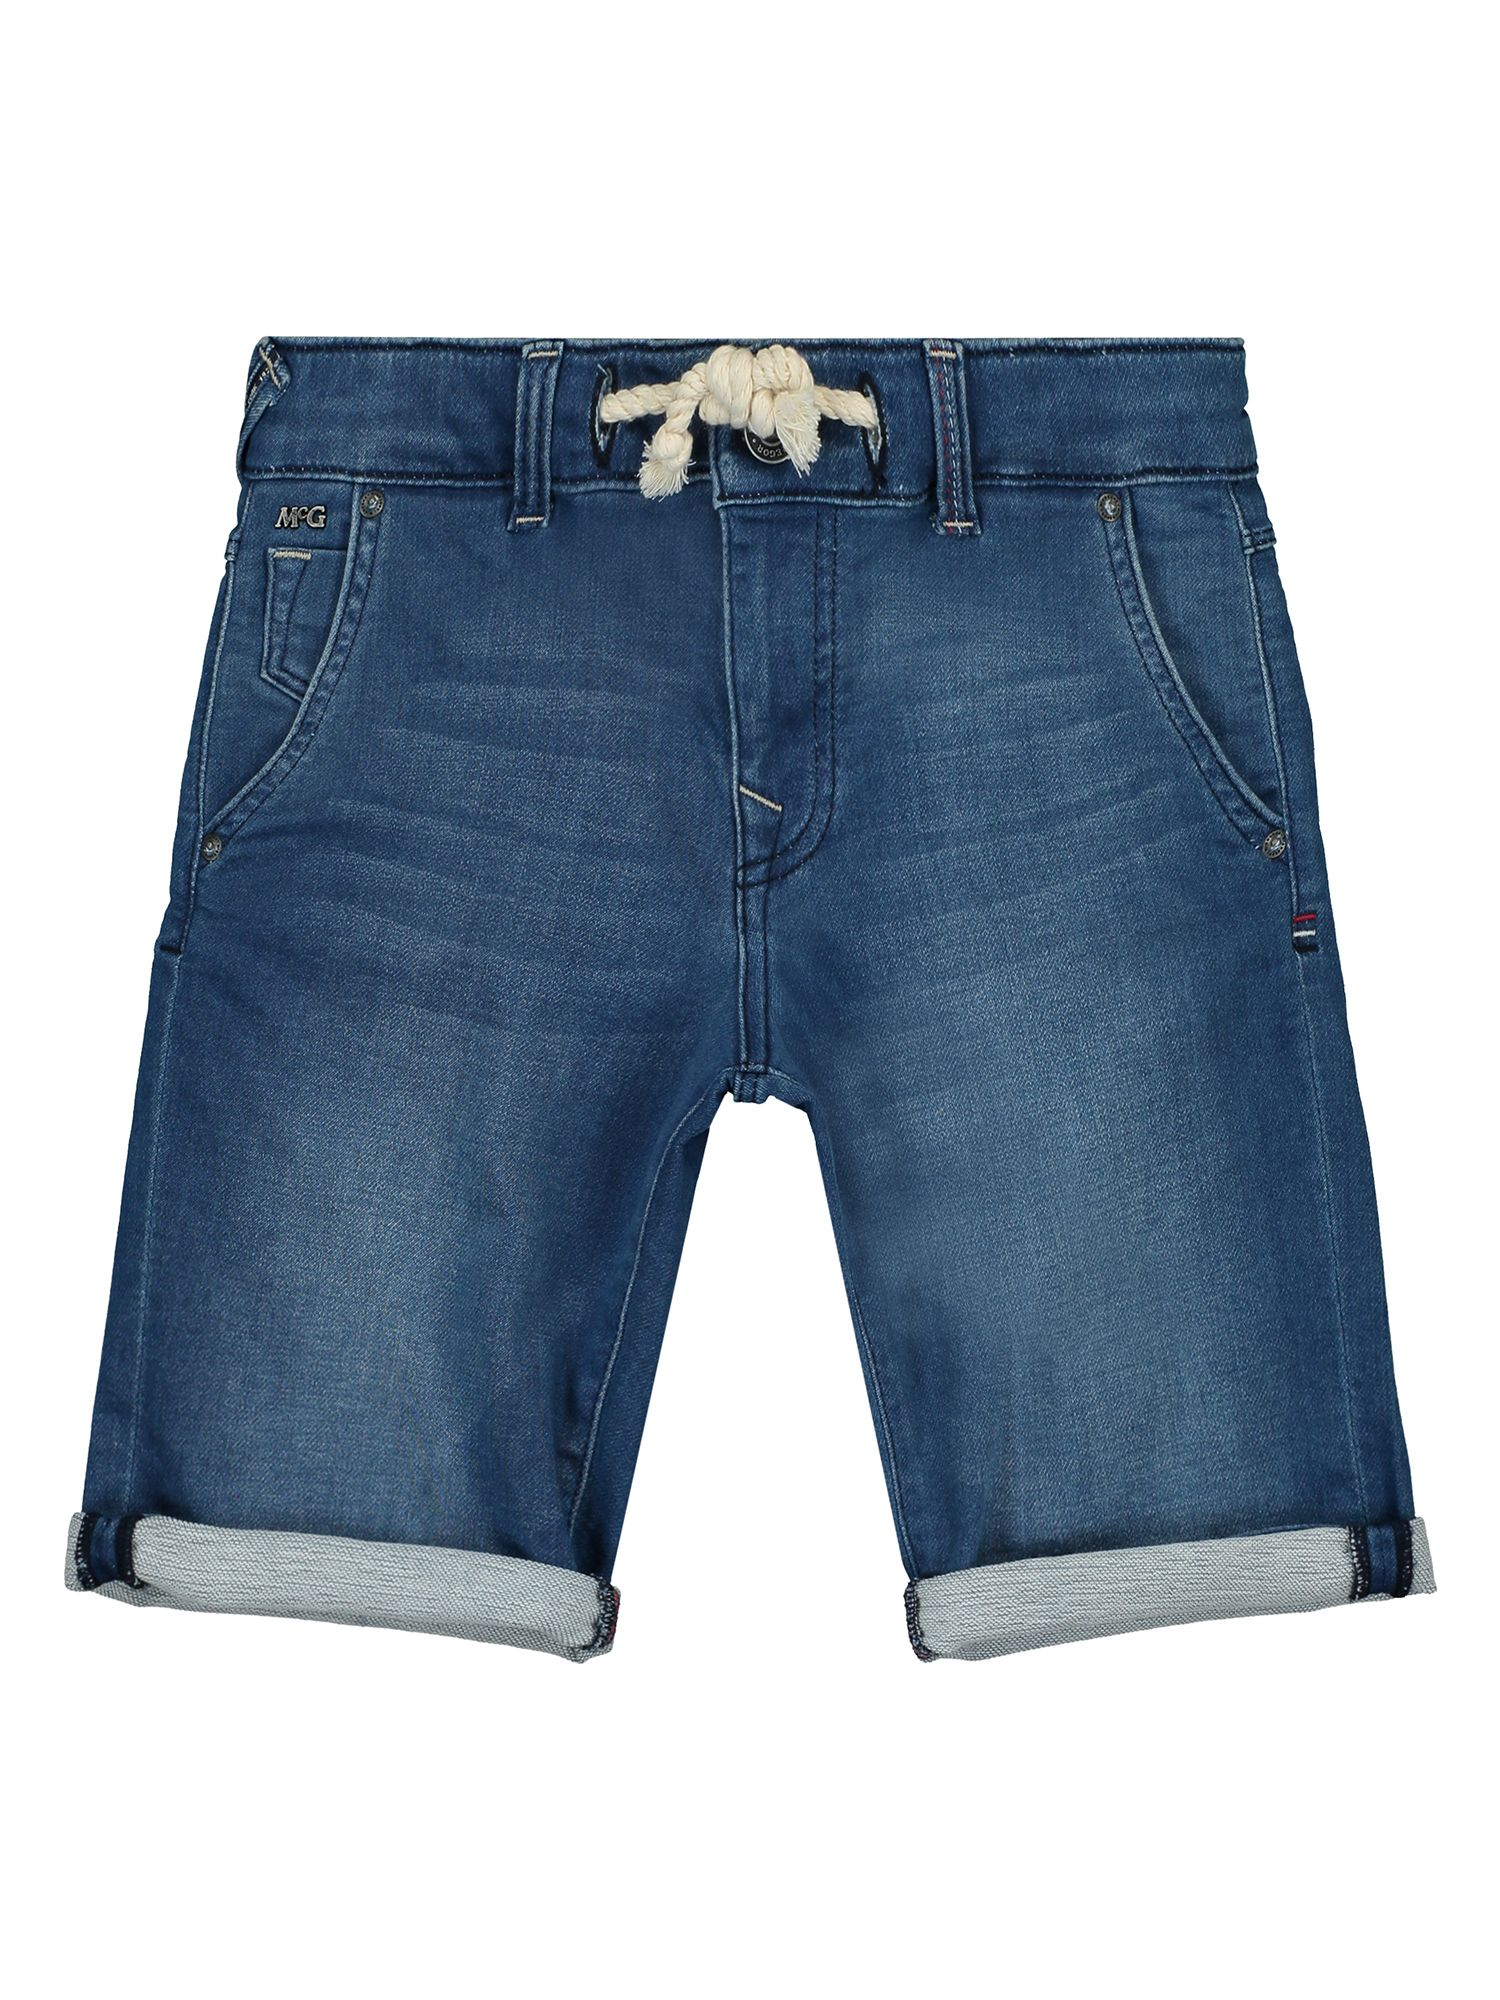 McGregor McGregor Boys Short Sierra Denim, Blue